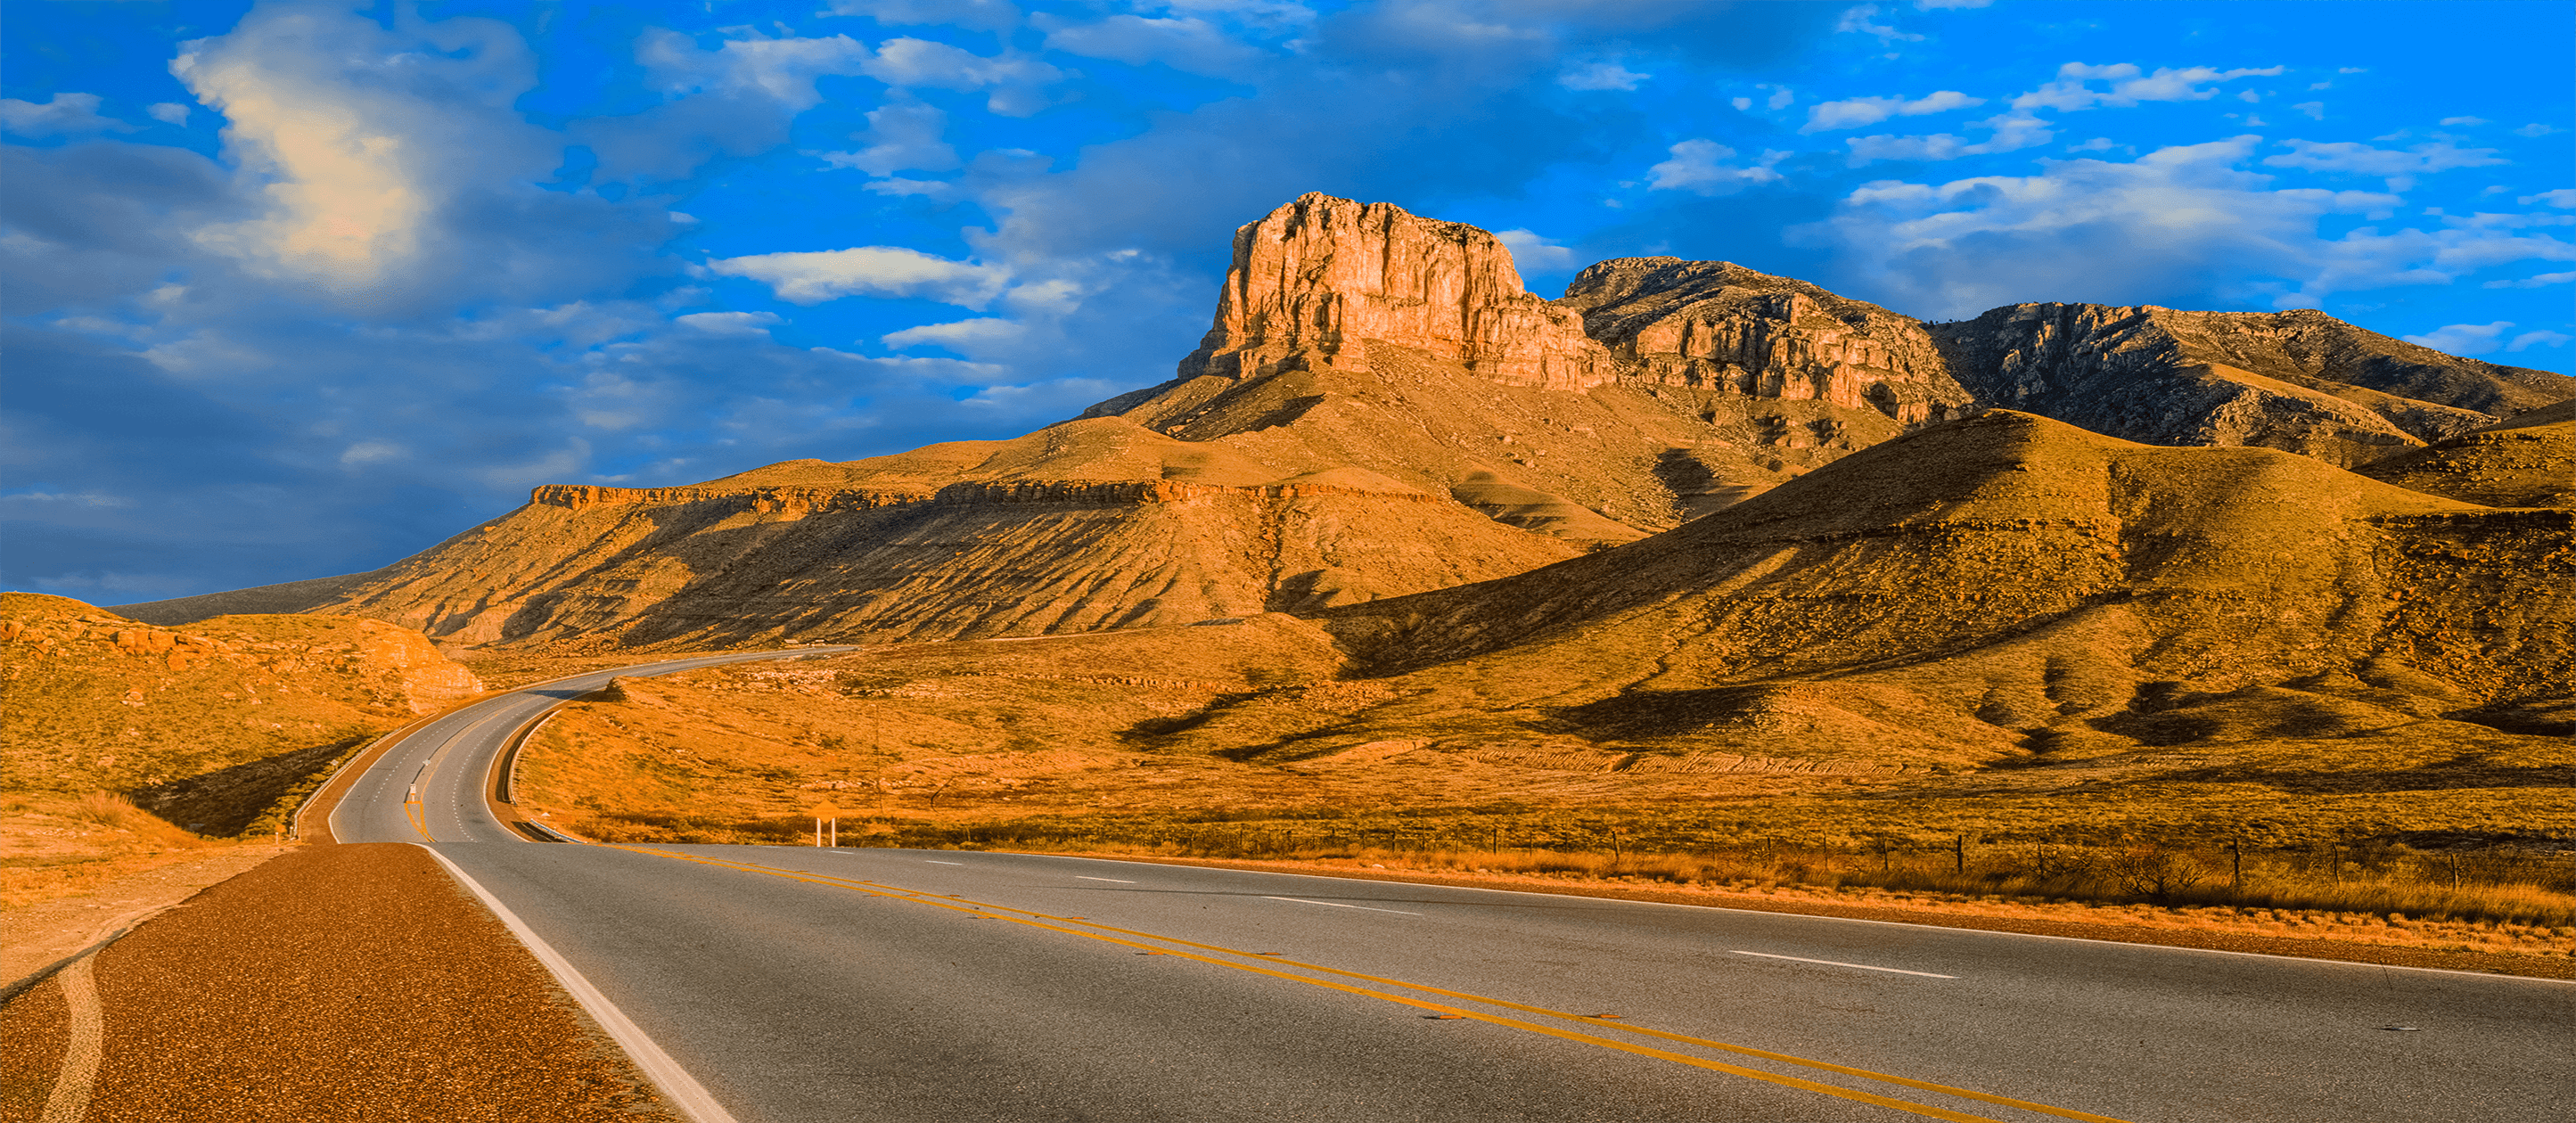 Image of winding road through desert with cliffs and blue sky